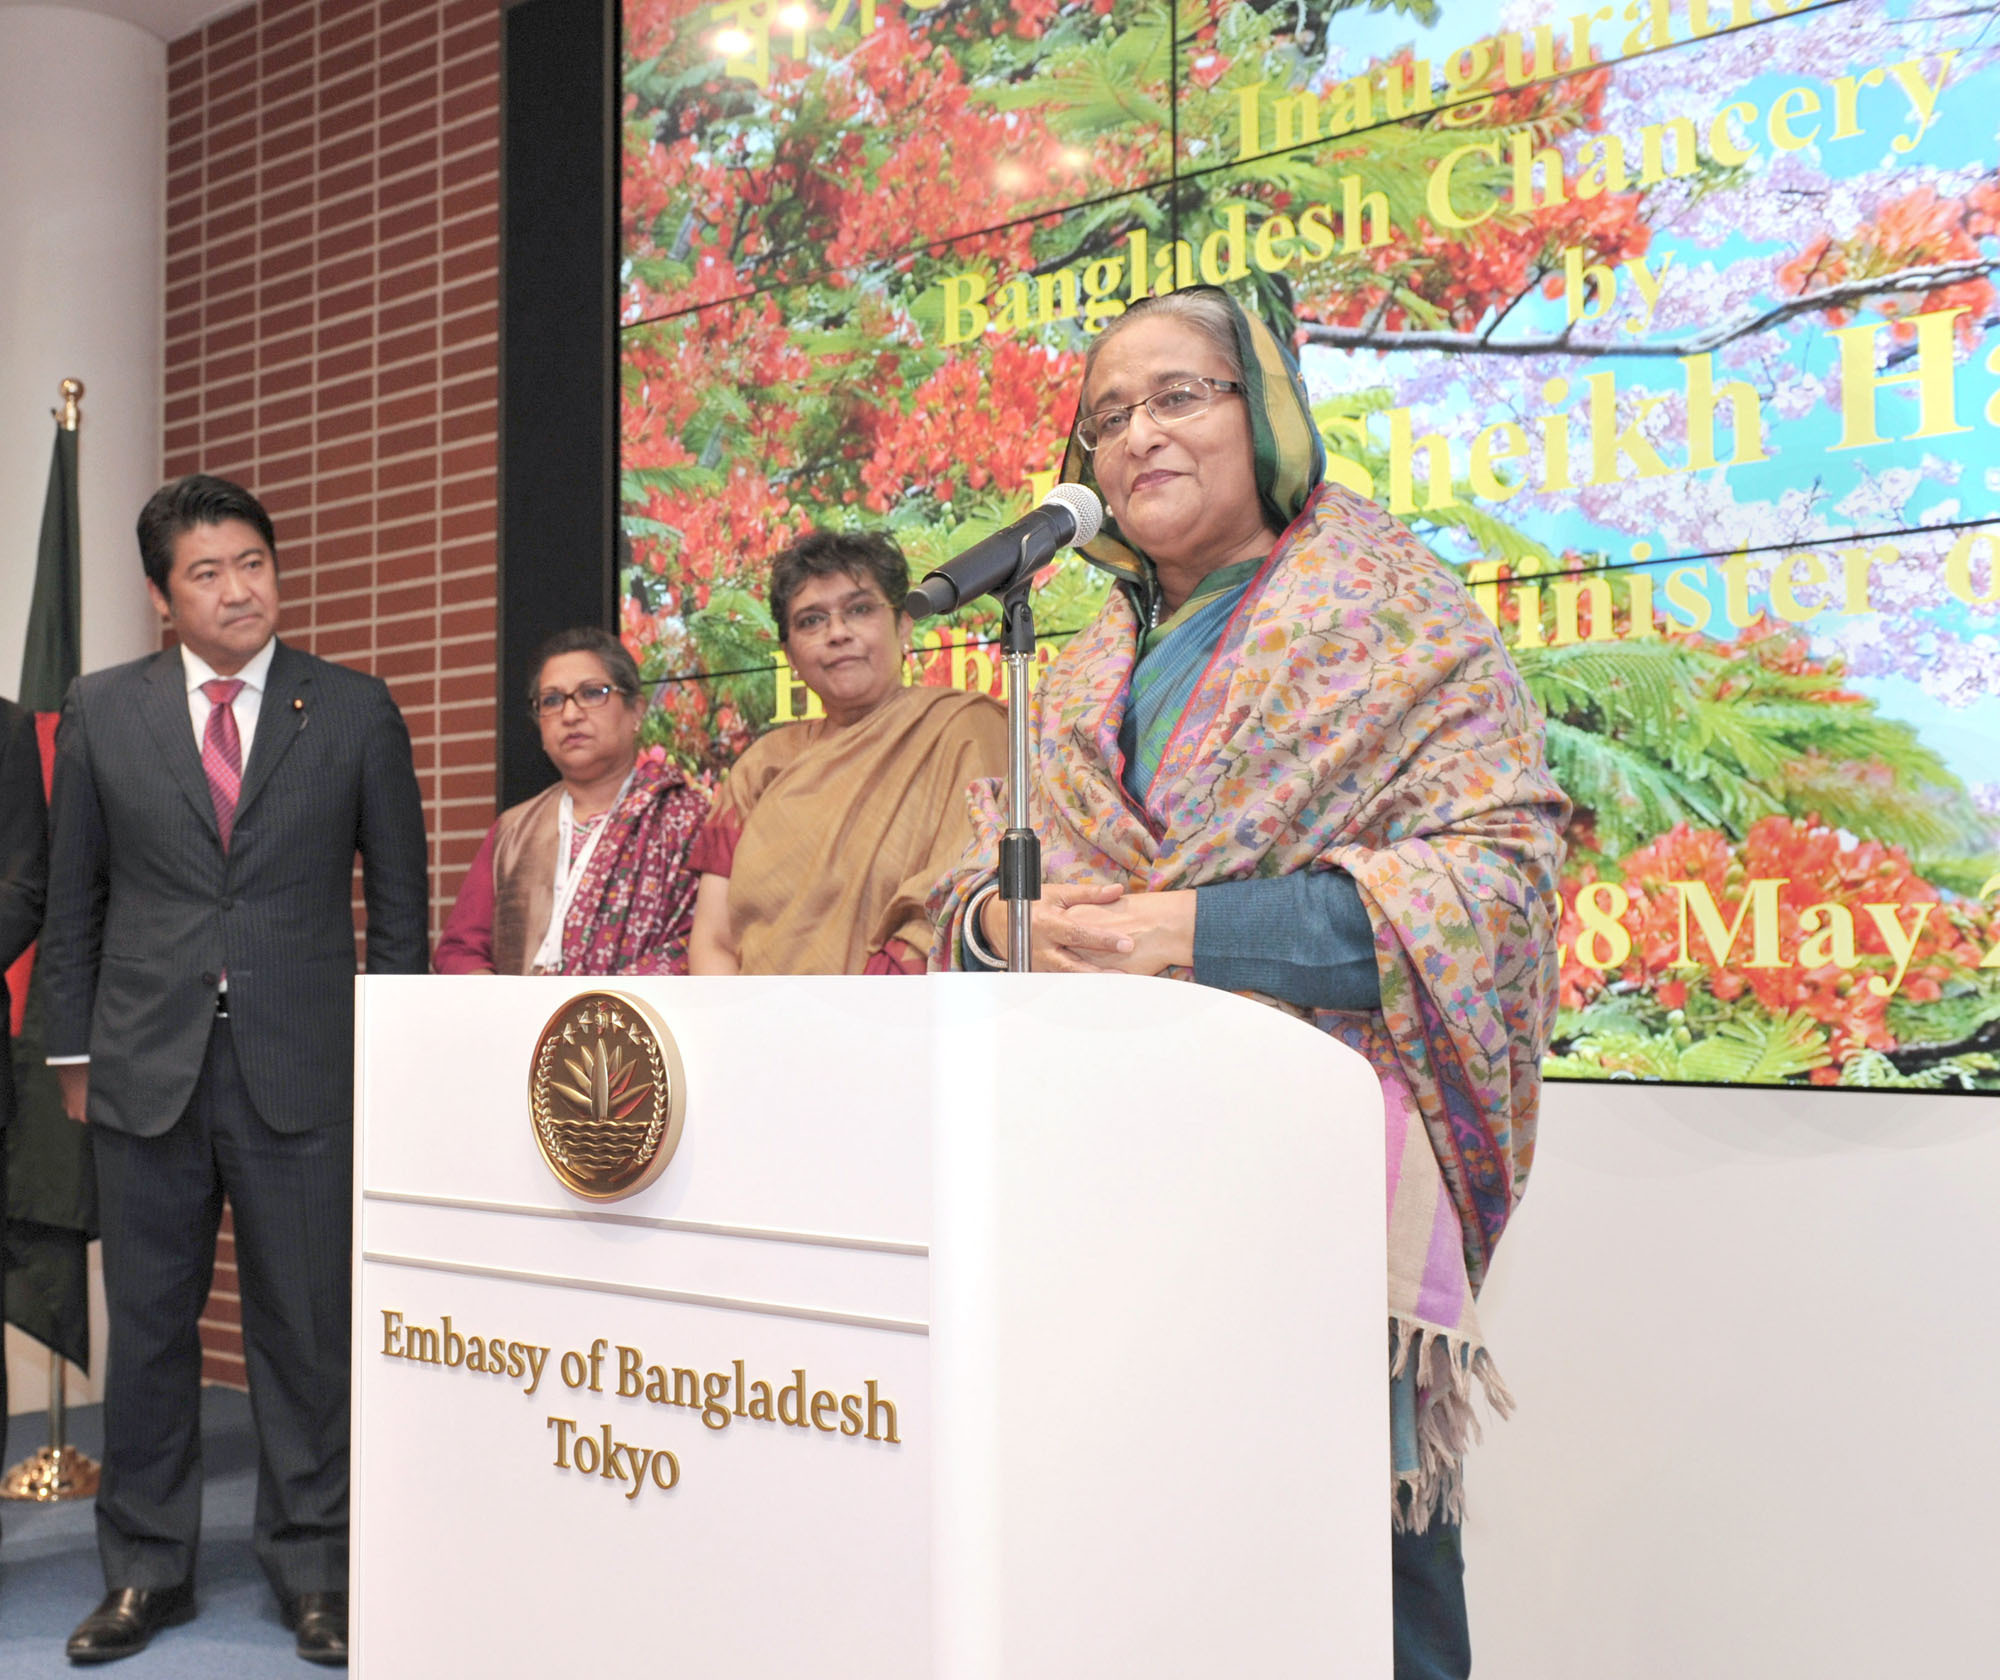 Bangladesh Prime Minister Sheikh Hasina (right), speaks at the opening of the newly constructed Embassy of Bangladesh as State Minister for Foreign Affairs Seiji Kihara (left) and Bangladesh Ambassador Rabab Fatima (second from right) look on at the new embassy in Kioicho, Chiyoda-ku on May 28. |  YOSHIAKI MIURA